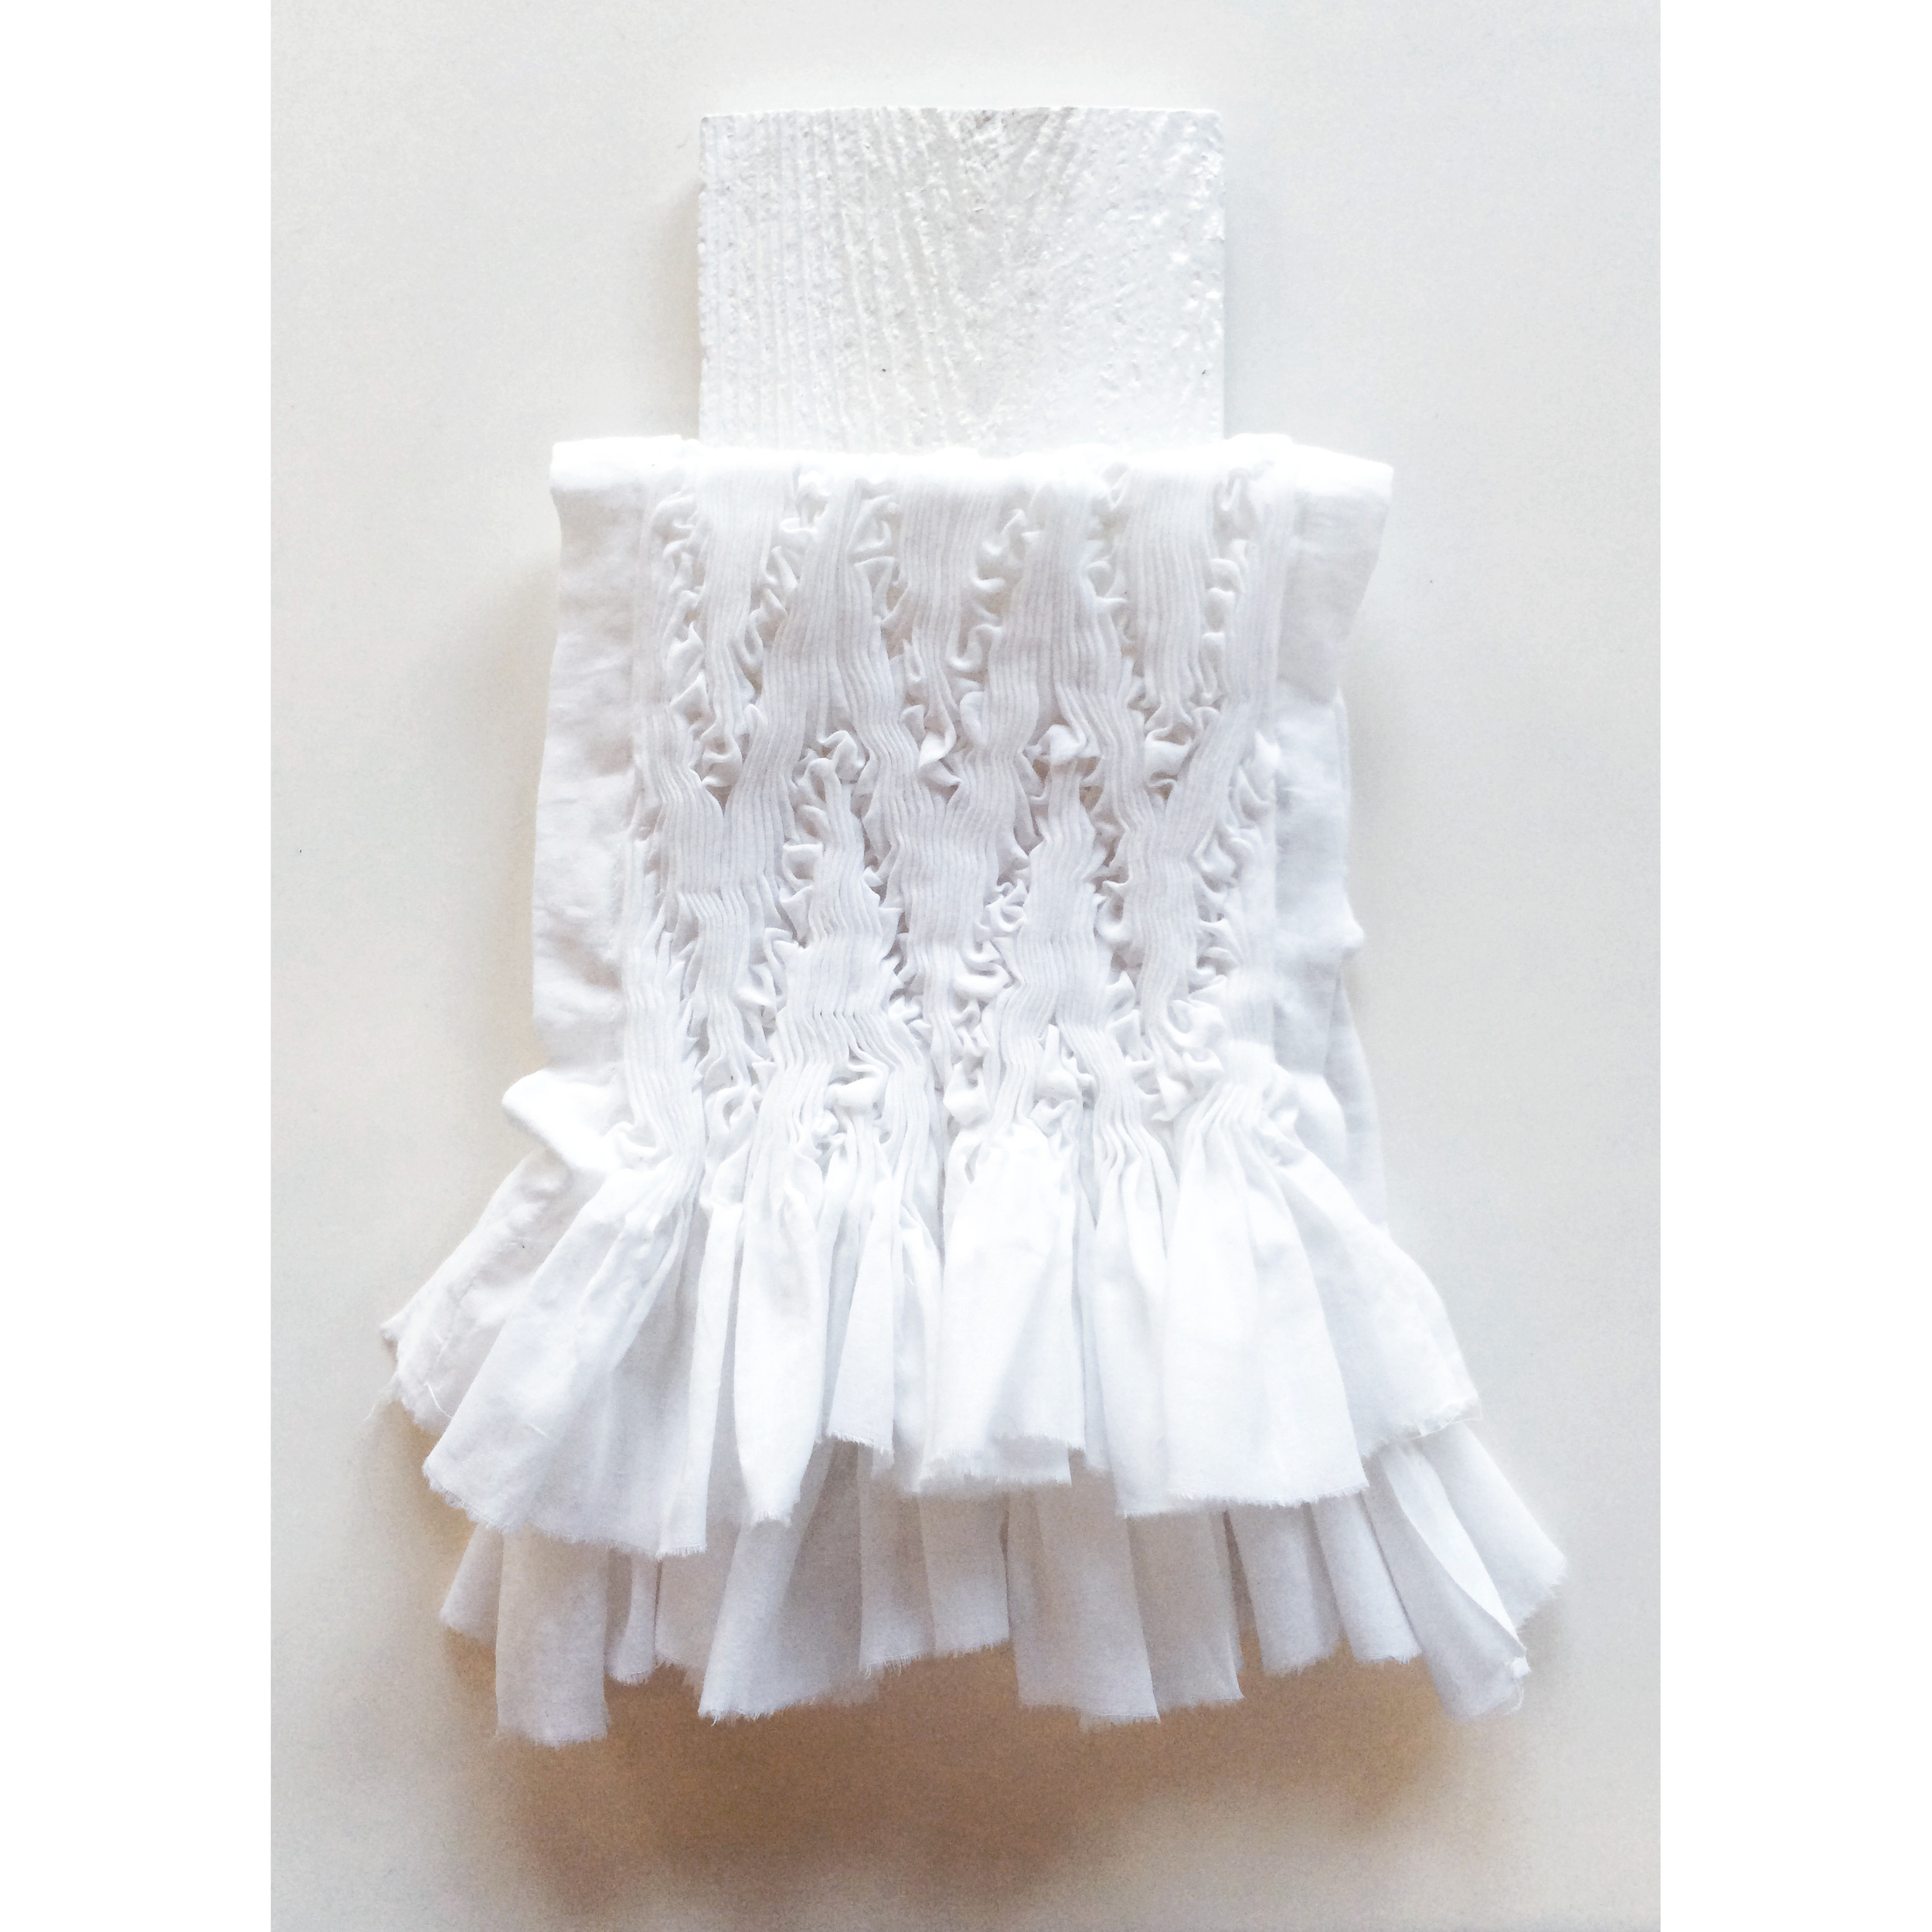 ITALIAN SMOCKING PIECE,                 WHITE OUT, OCAD FINAL PROJECT